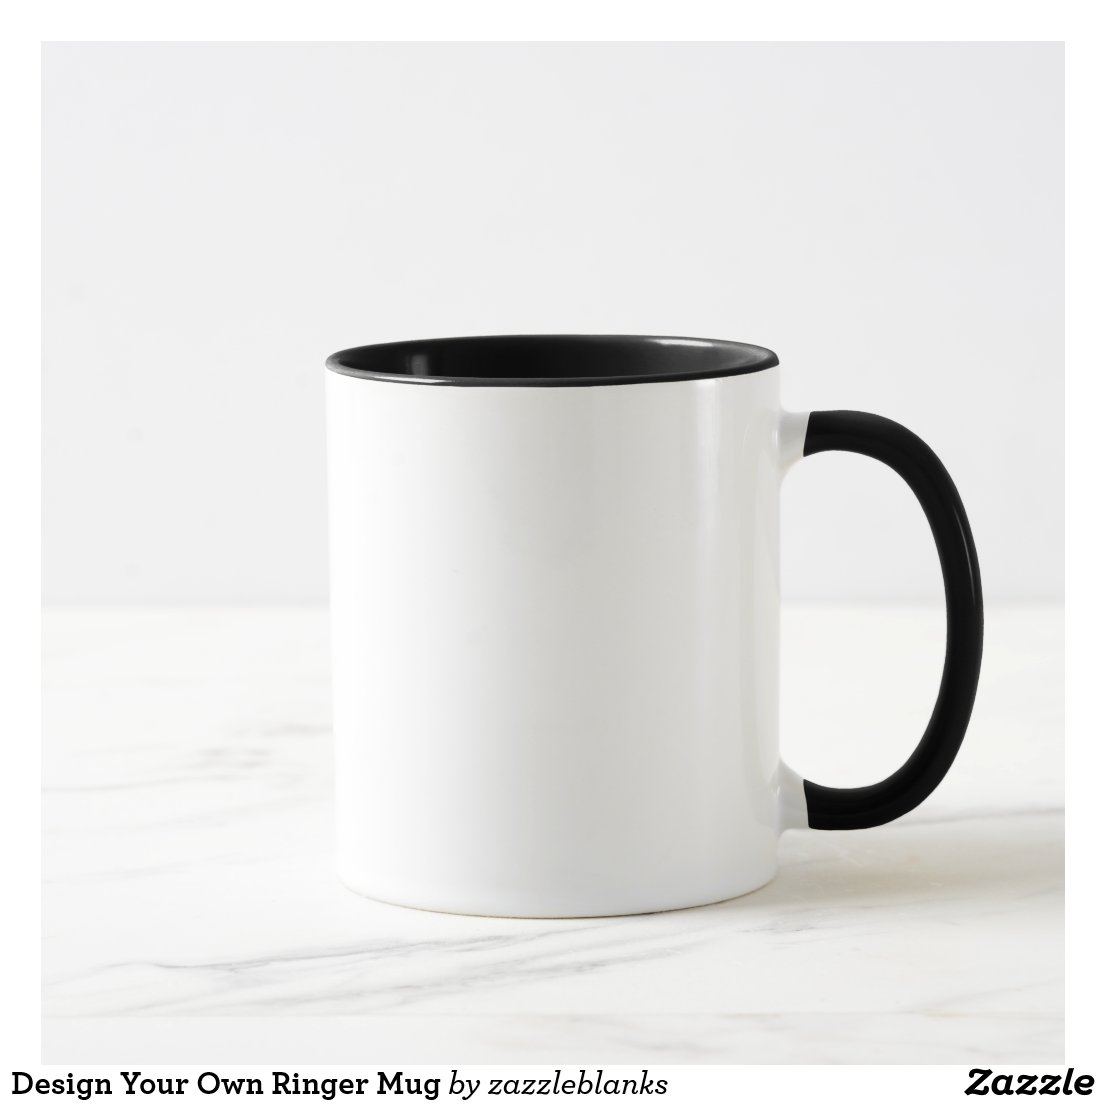 Design Your Own Ringer Mug